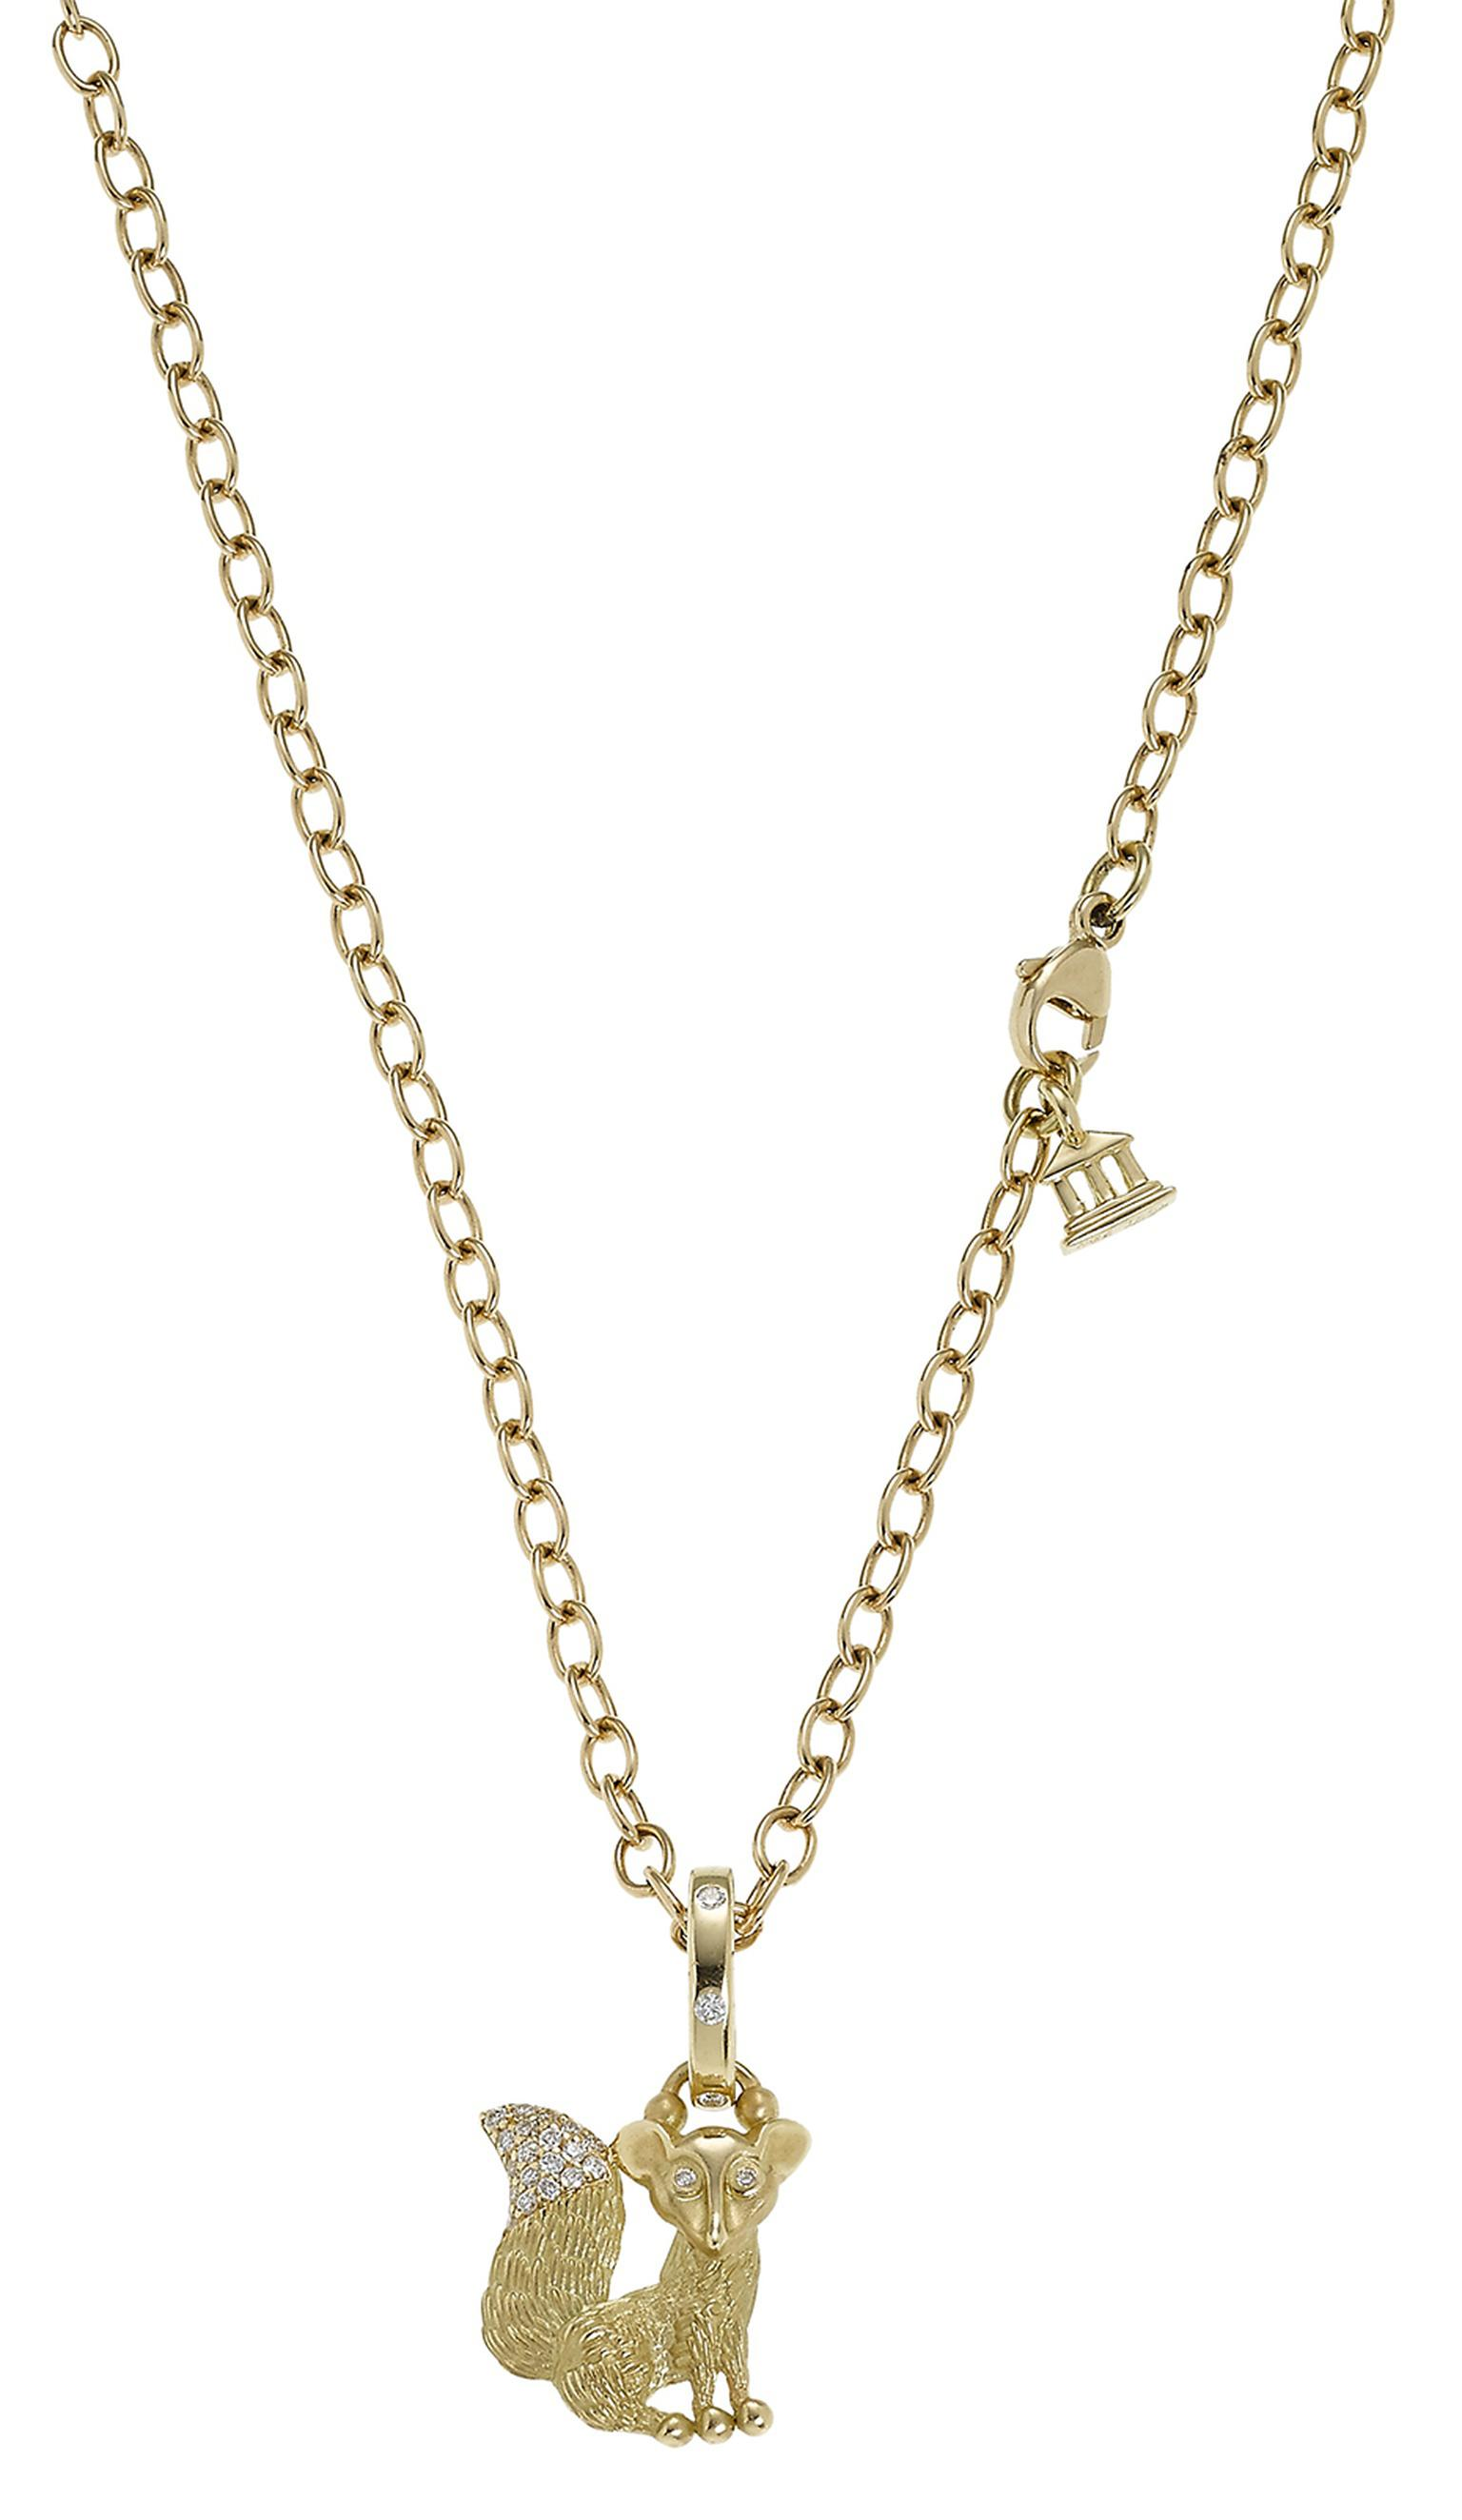 Temple St Clair Sitting Fox gold pendant with a diamond-tipped tail ($3,500).